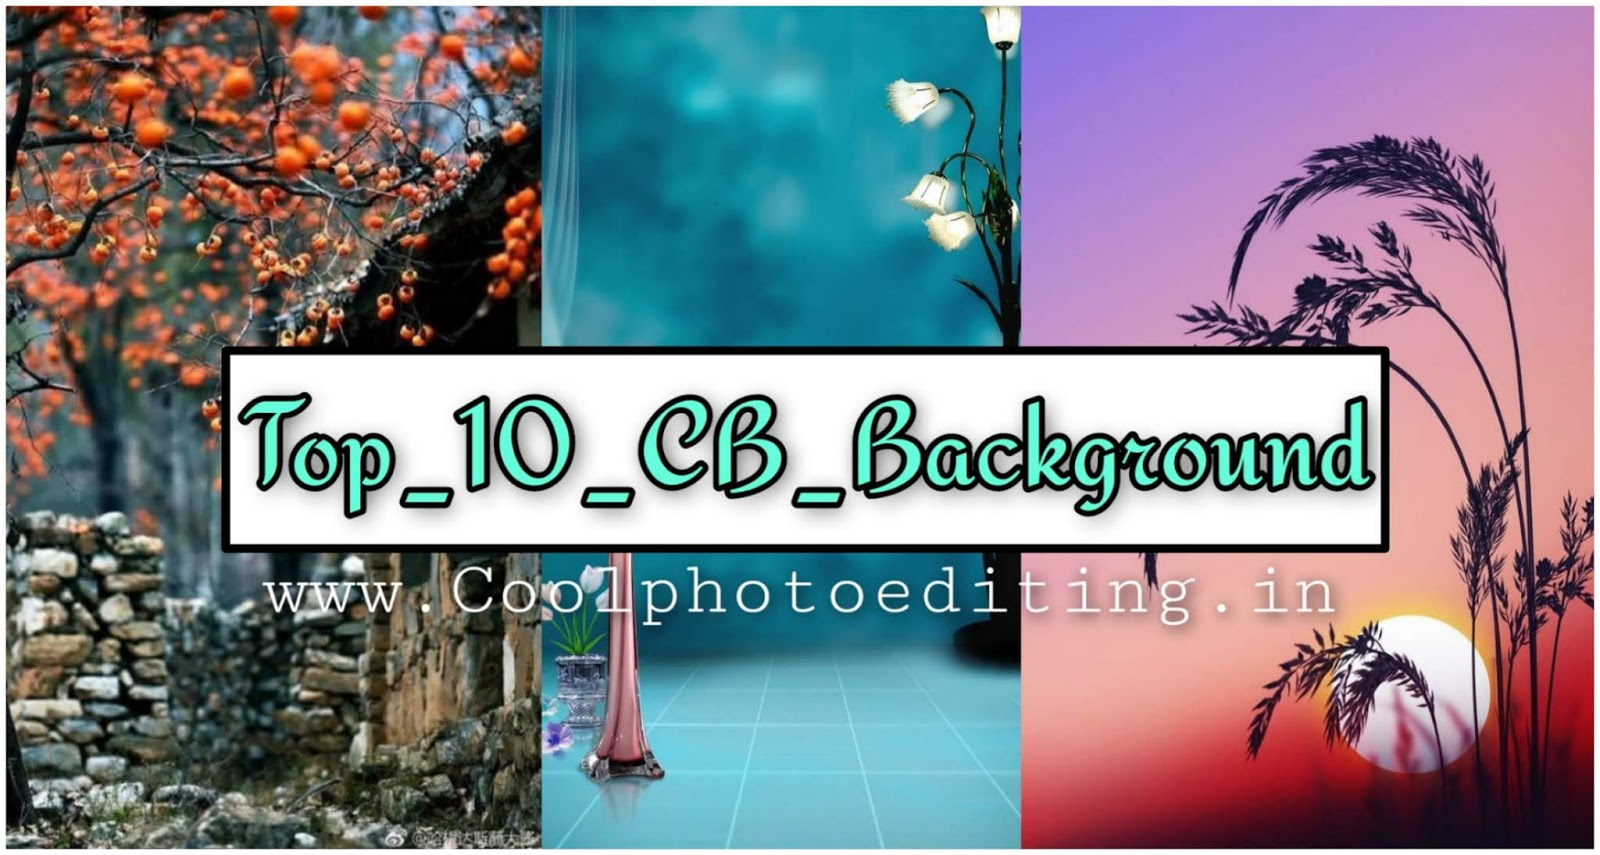 www.coolphotoediting.in